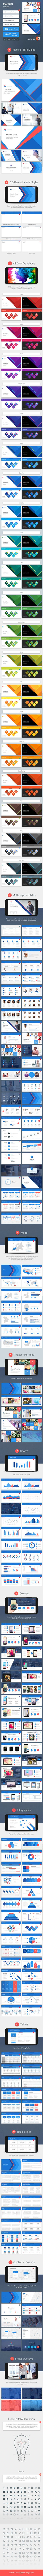 Buy Material Keynote Presentation Template by on GraphicRiver. Material – Keynote Material Presentation Templates Welcome to Material Design Keynote Presentation Template. Cool Powerpoint Templates, Creative Powerpoint Presentations, Professional Powerpoint Templates, Powerpoint Themes, Indesign Templates, Keynote Template, Presentation Template Design, Keynote Presentation, Business Presentation Templates